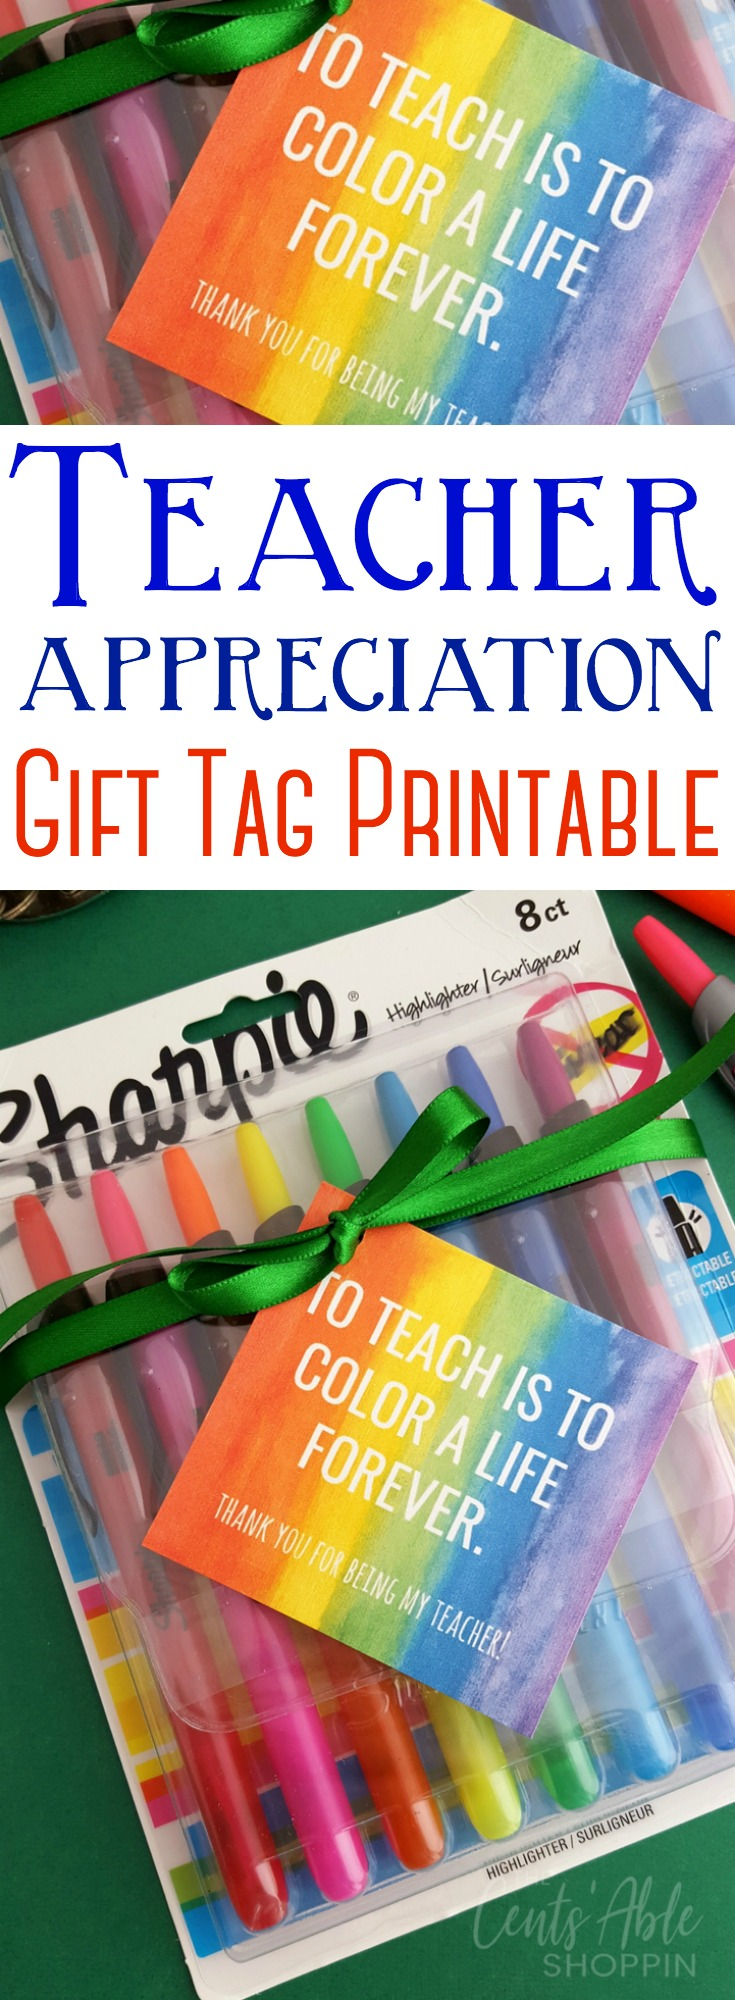 Teacher Appreciation Gift Tag Printable The Centsable